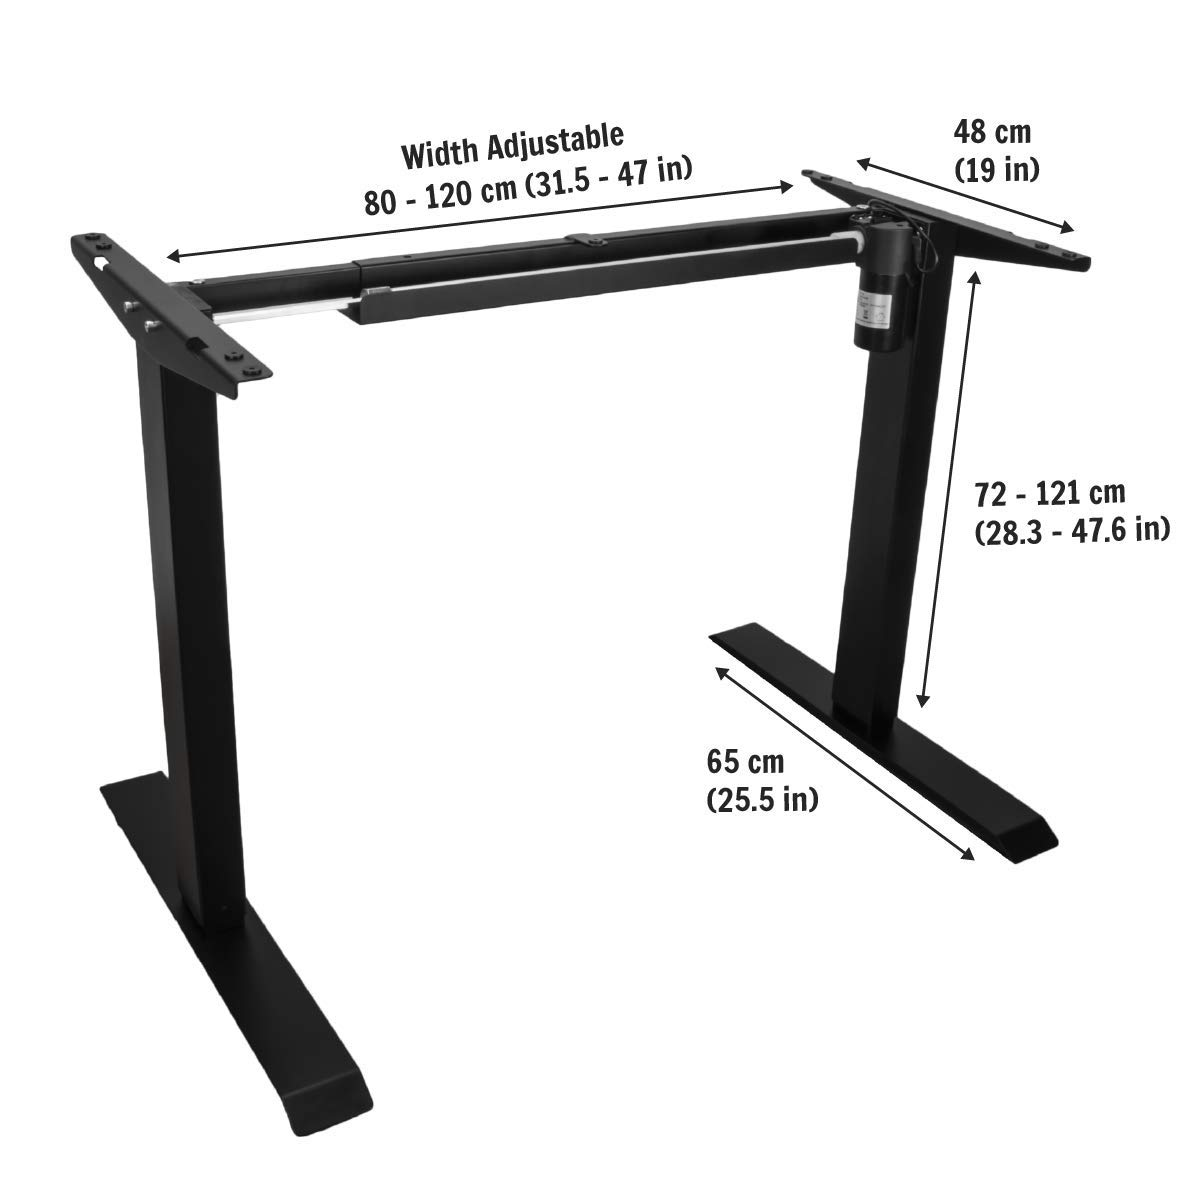 AnthroDesk Sit to Stand Electric Adjustable Height Standing Desk with Easy  Up/Down Controls (Black)